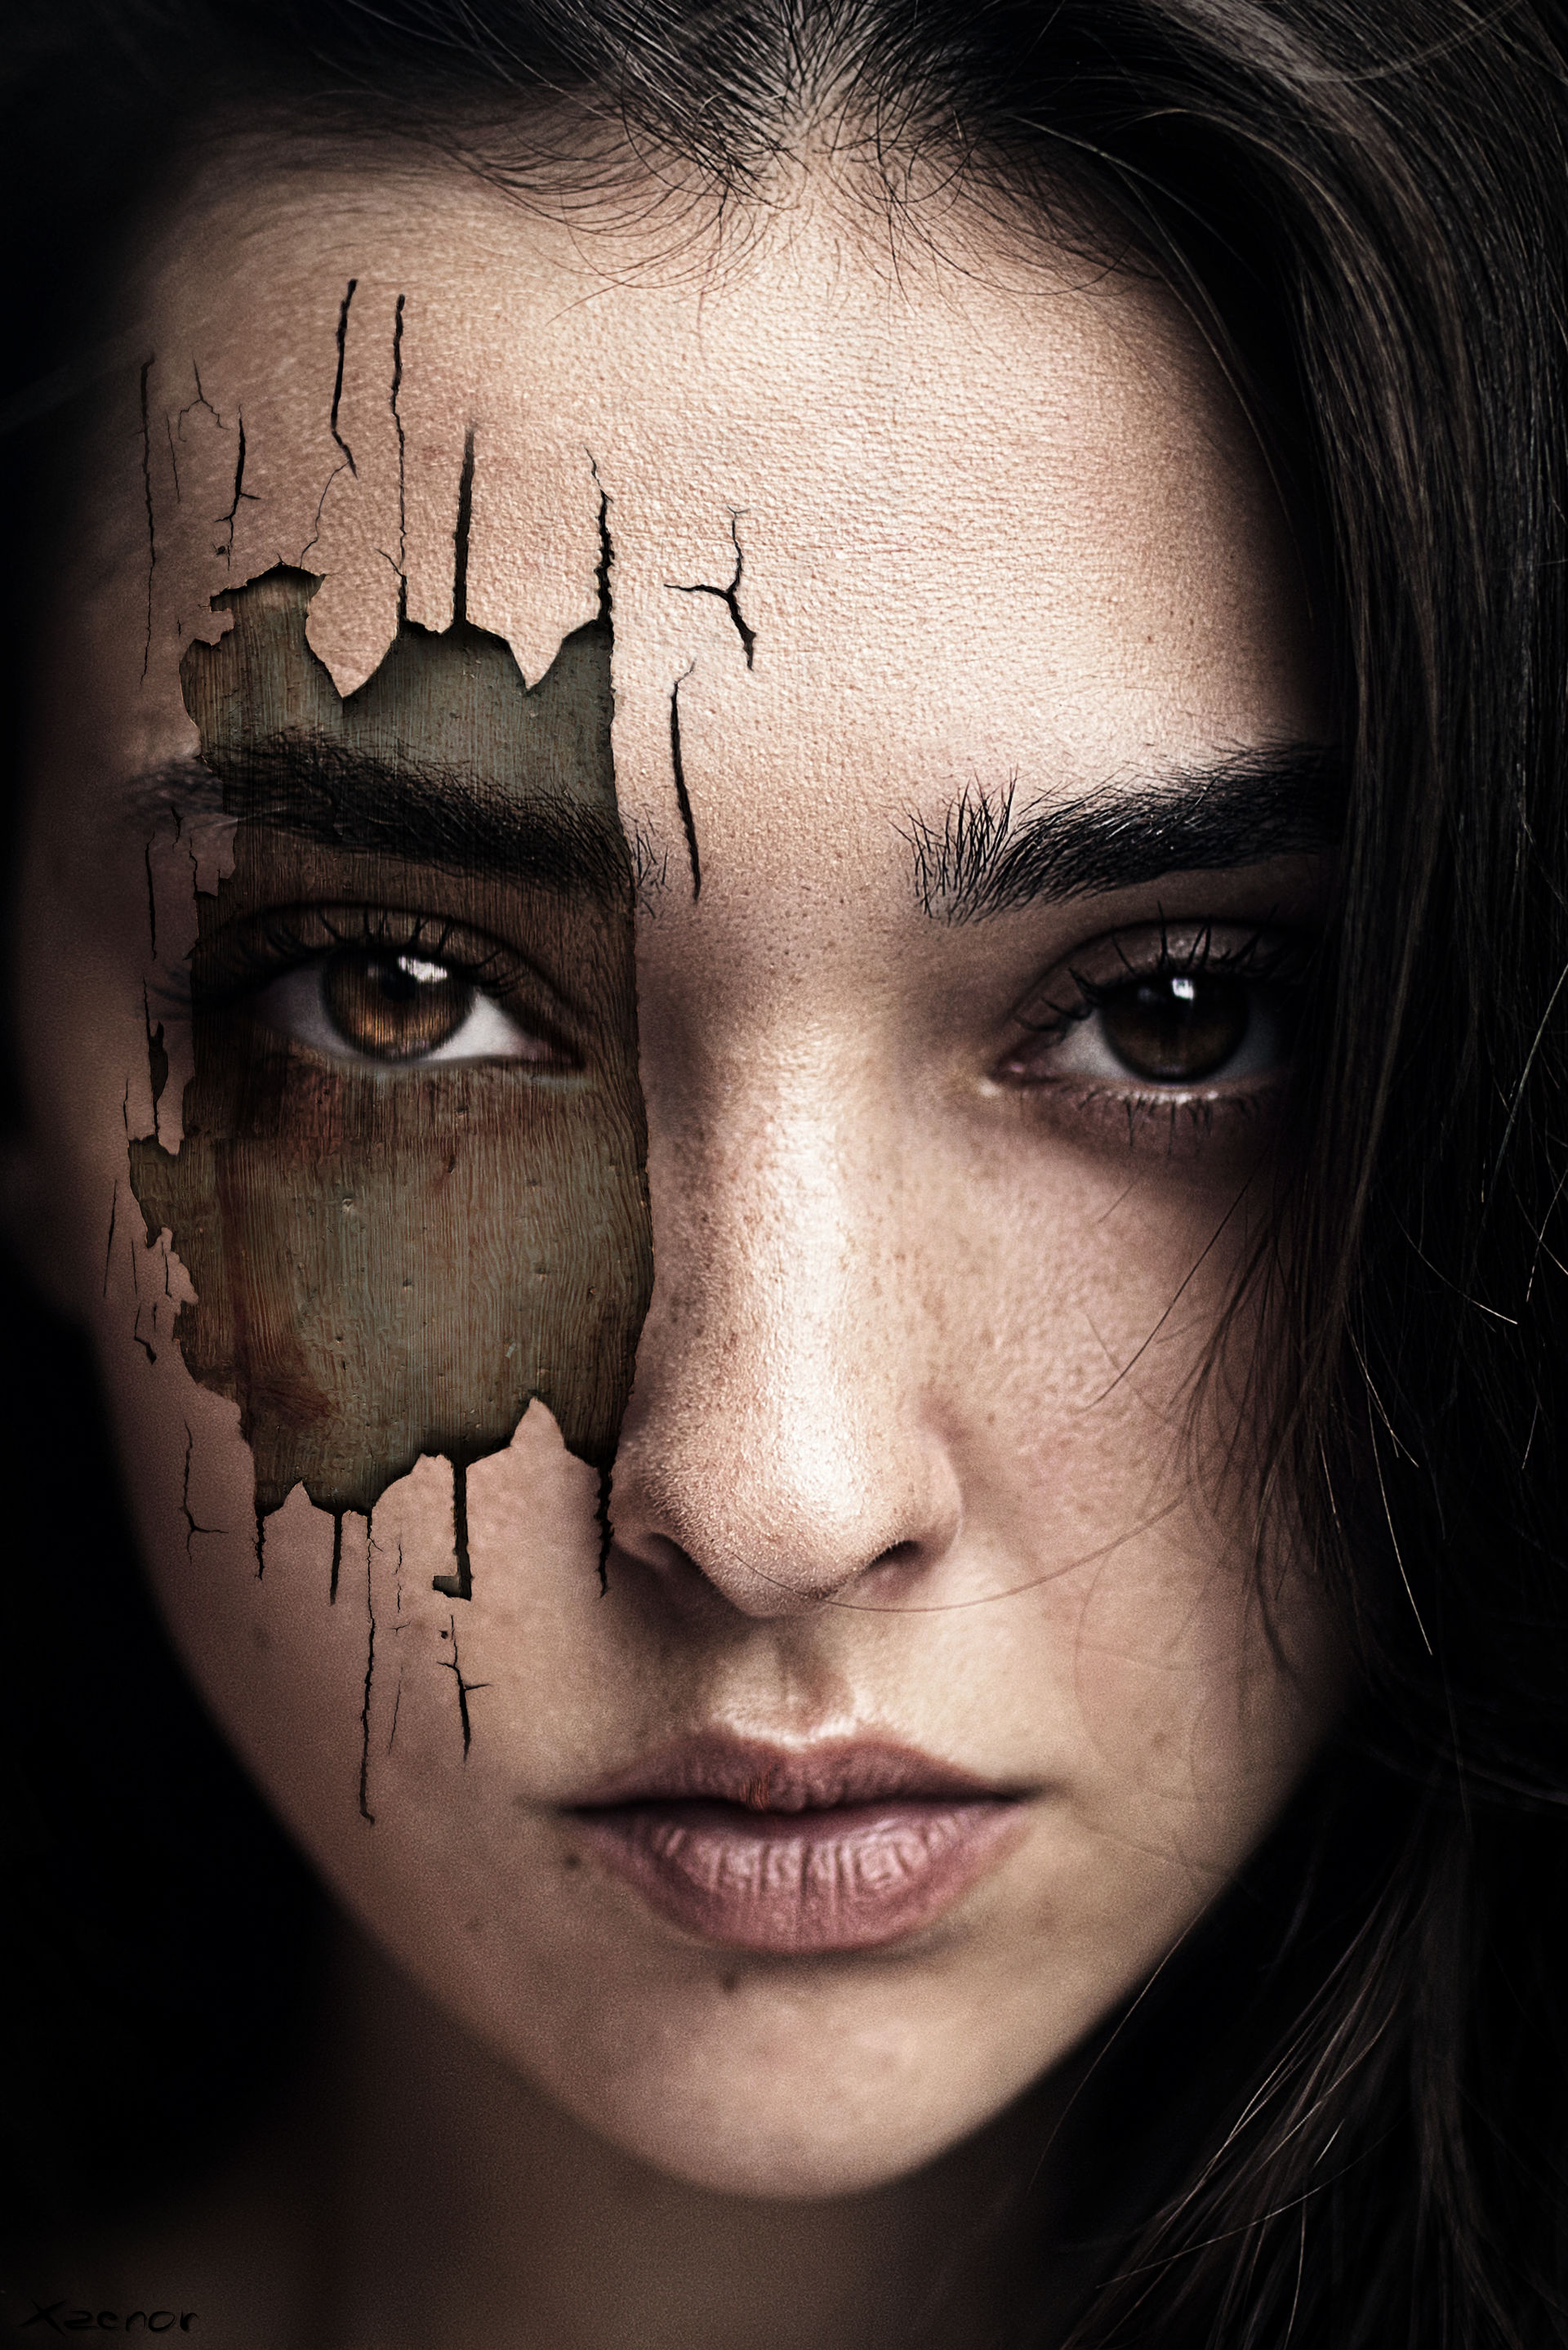 The Girl with the Wooden Face